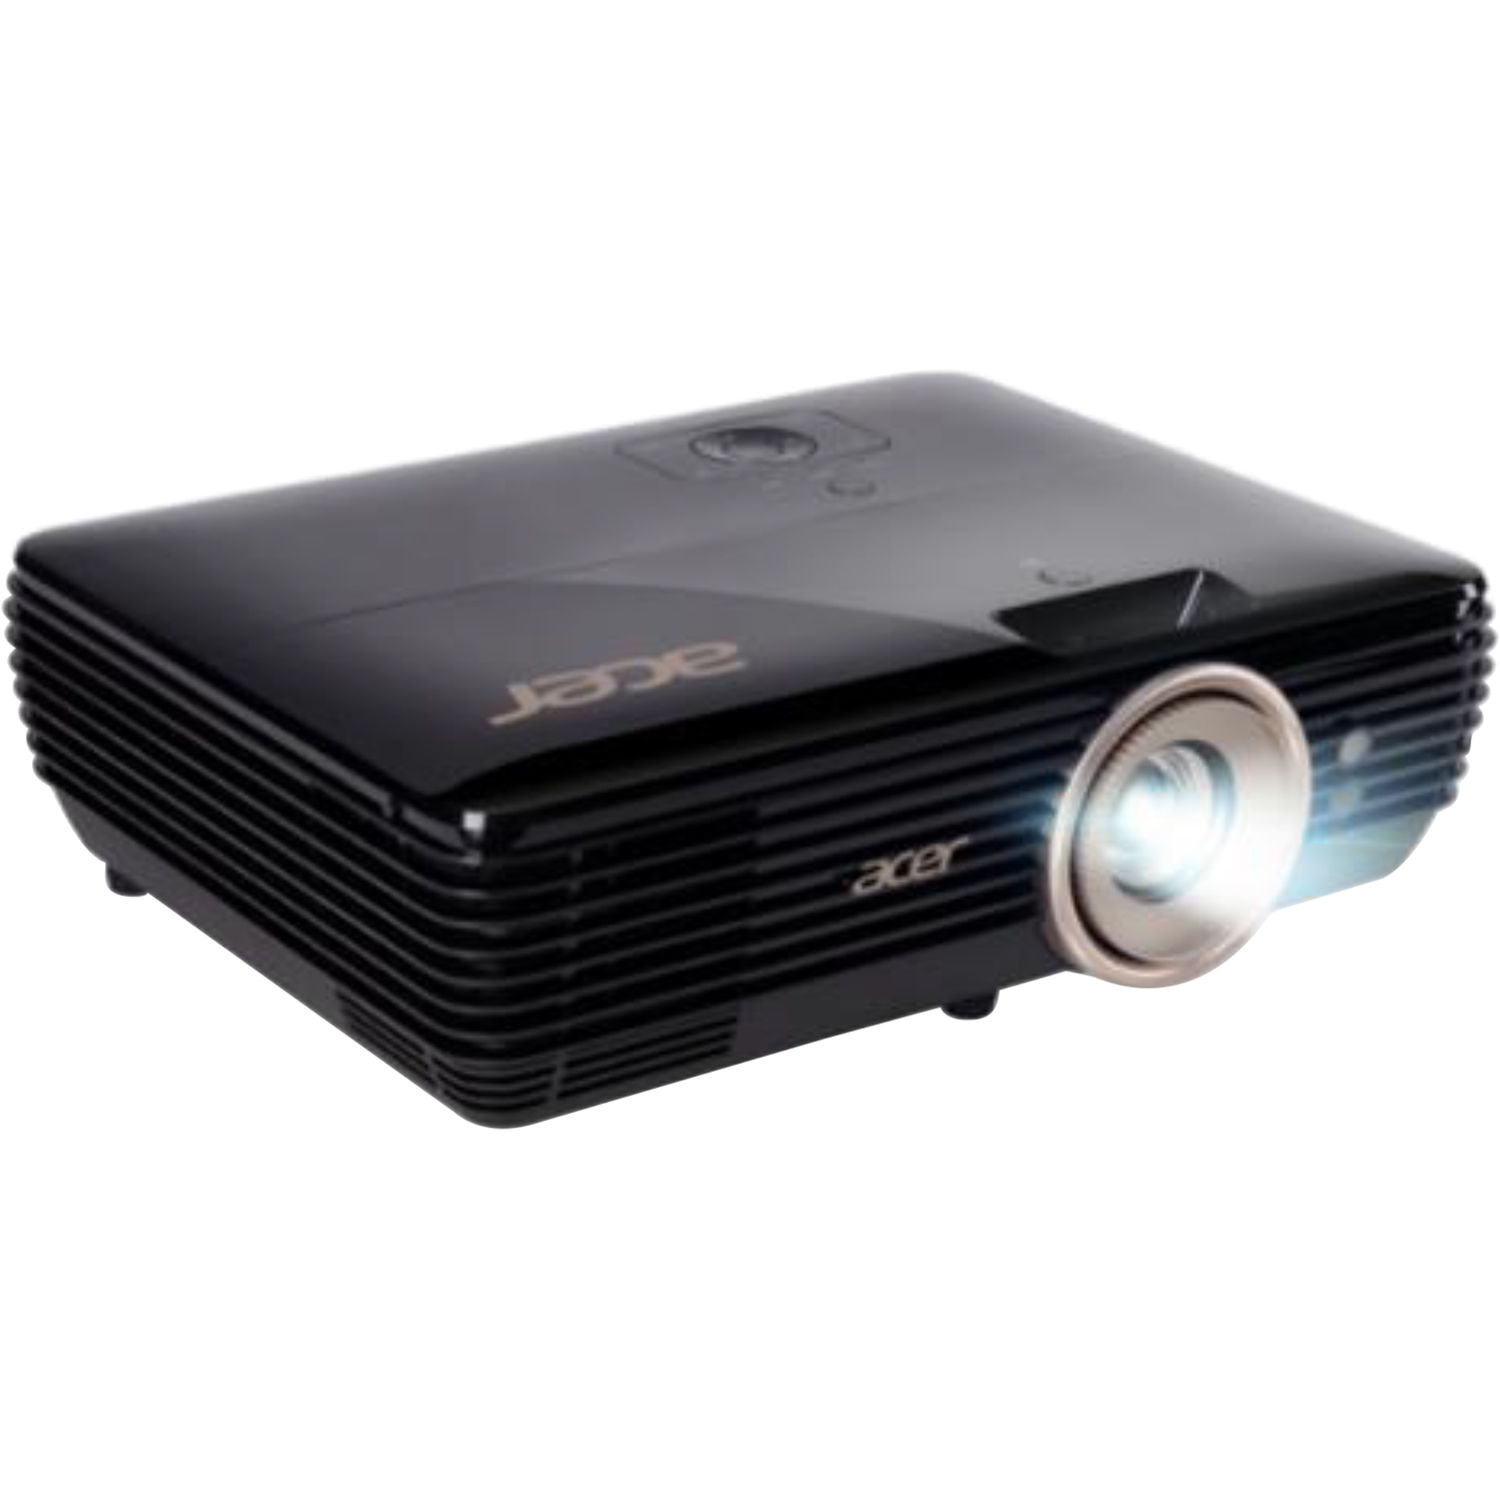 Acer V6820i HDR XPR 4K UHD DLP Home Theater Projector